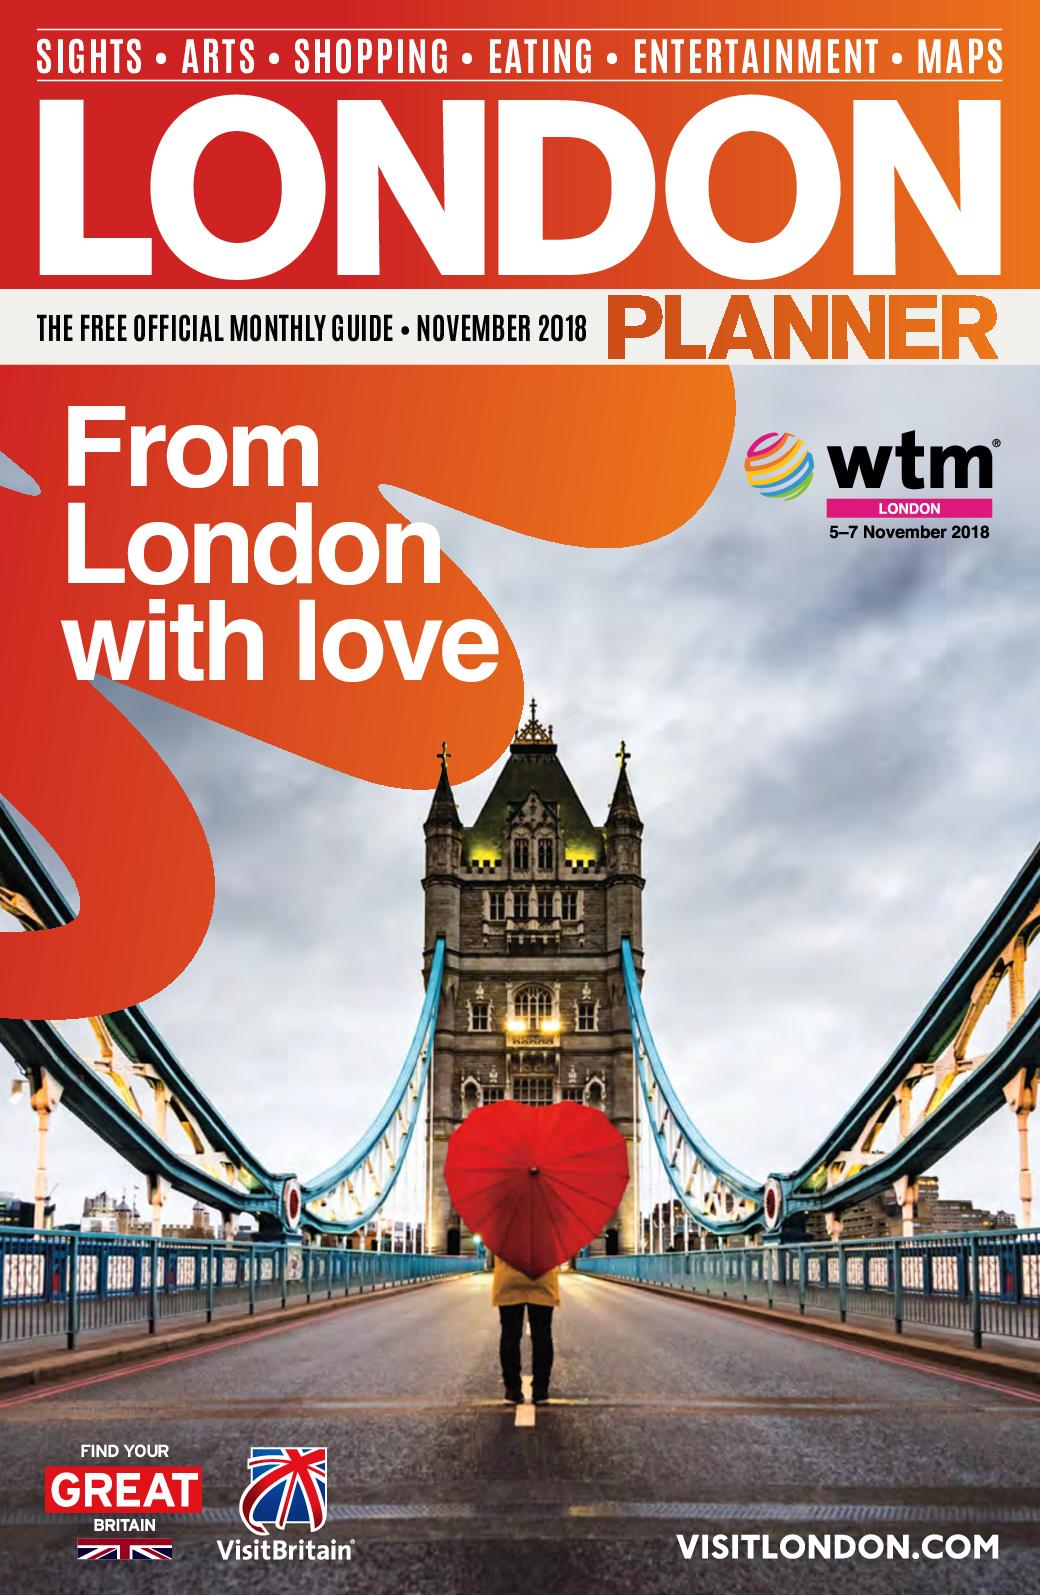 Calaméo London Planner November 2018 Wtm Edition